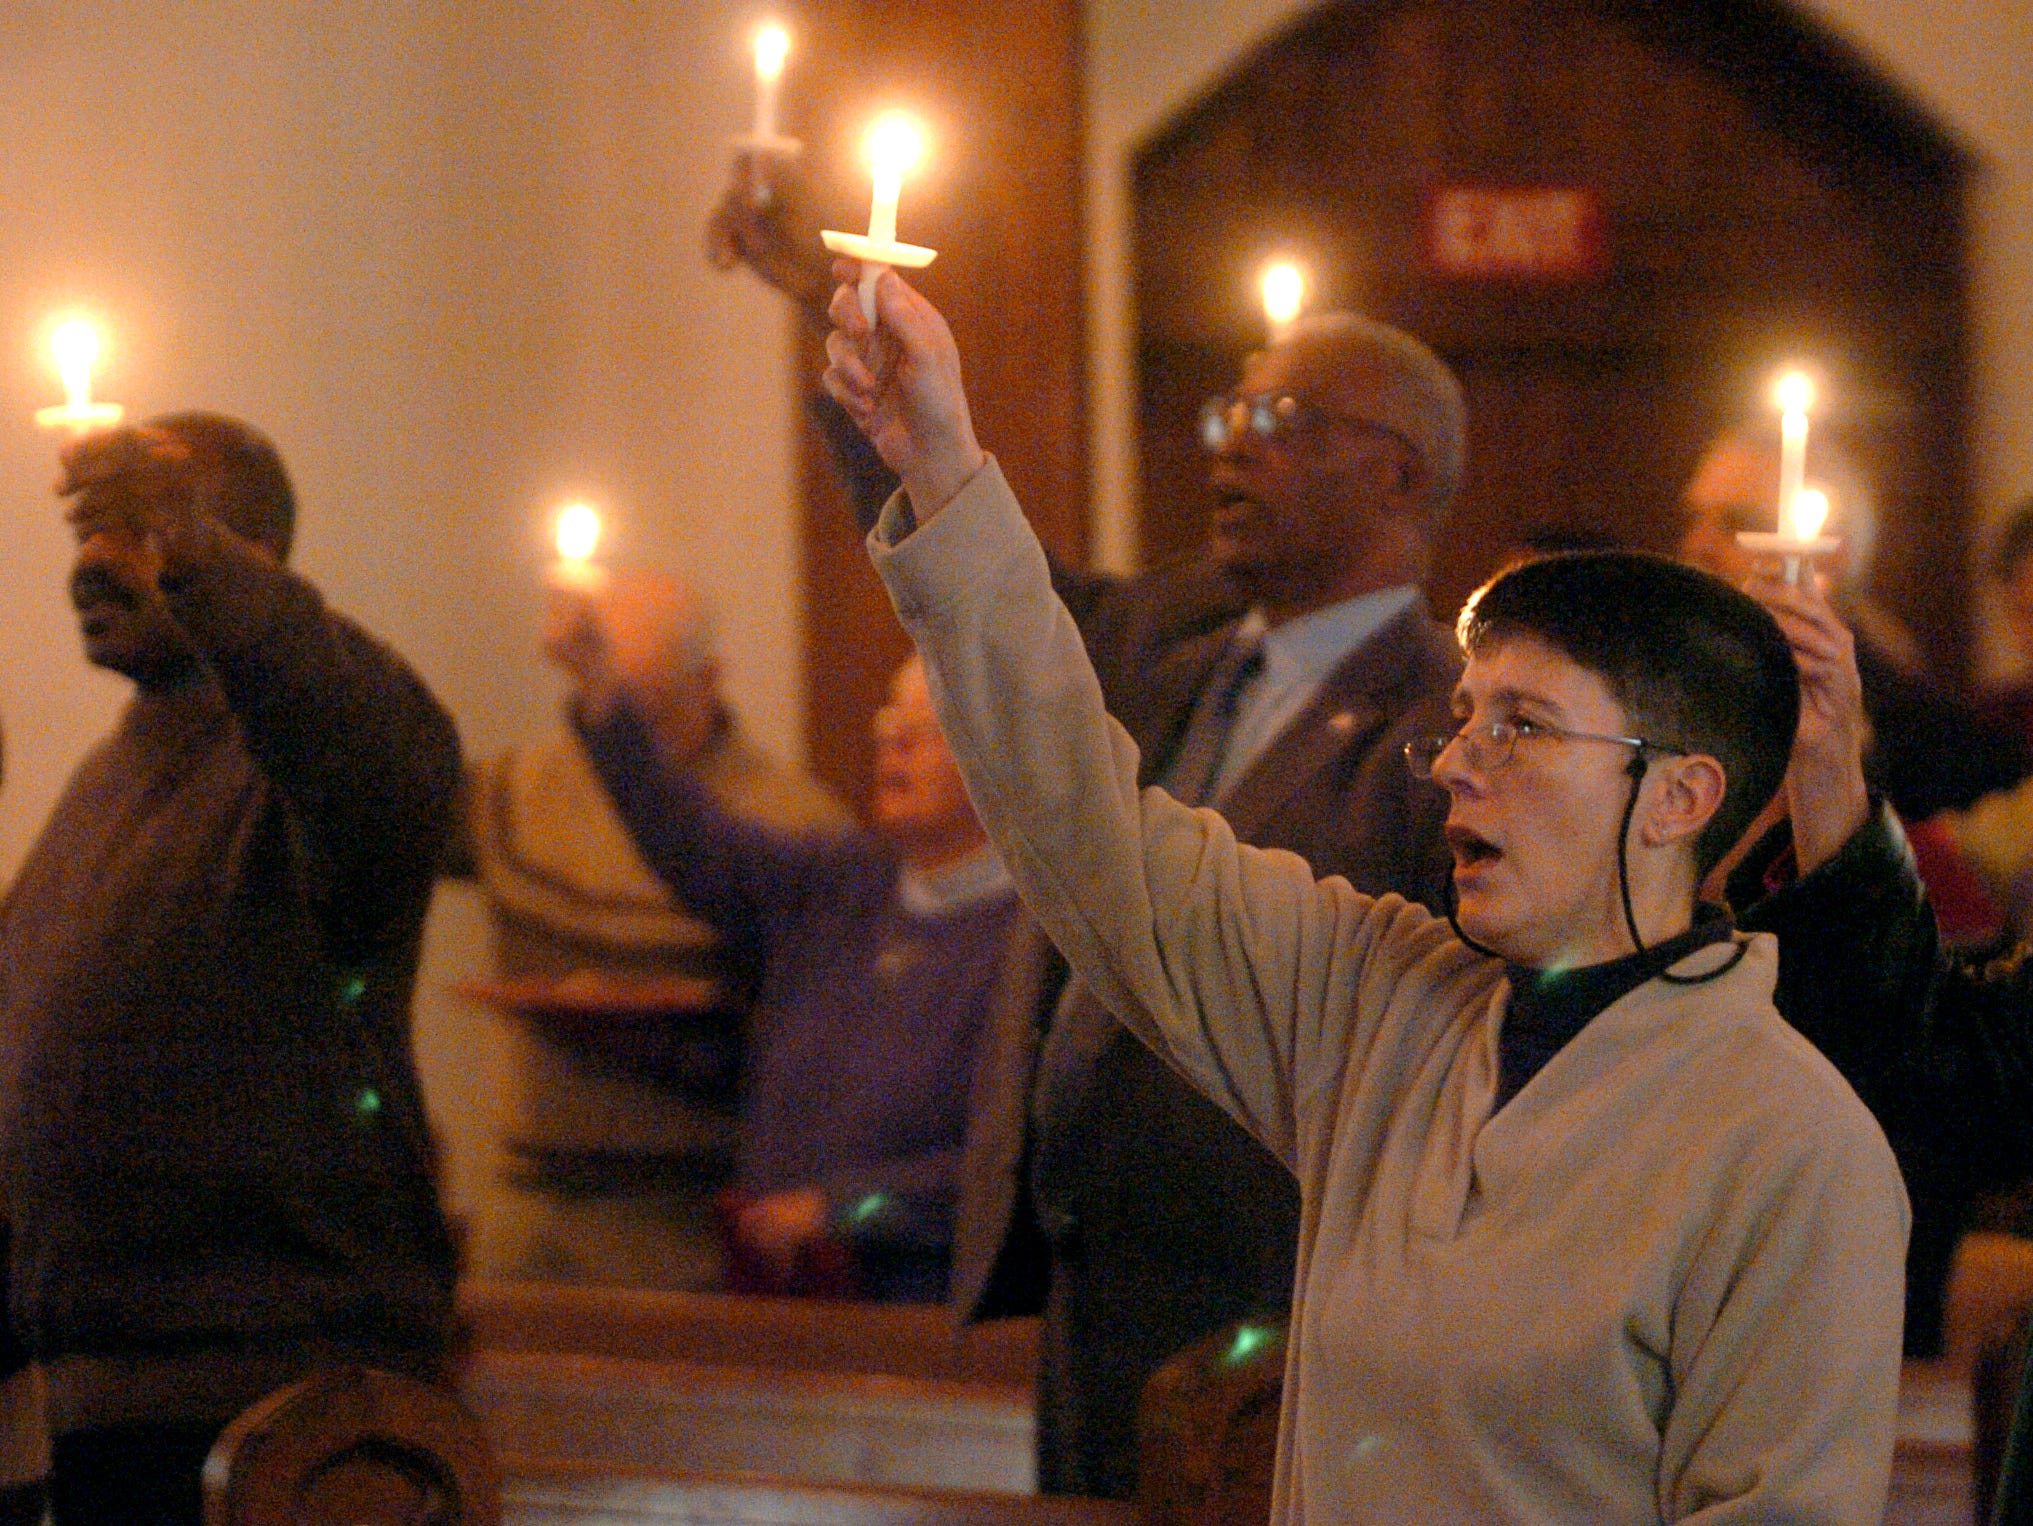 2006: Pat Pomeroy, right, of Endicott and other churchgoers raise candles while singing 'We Shall Overcome' during a church service in celebration of Dr. Martin Luther King Jr., at Central United Methodist Church Sunday in Endicott.